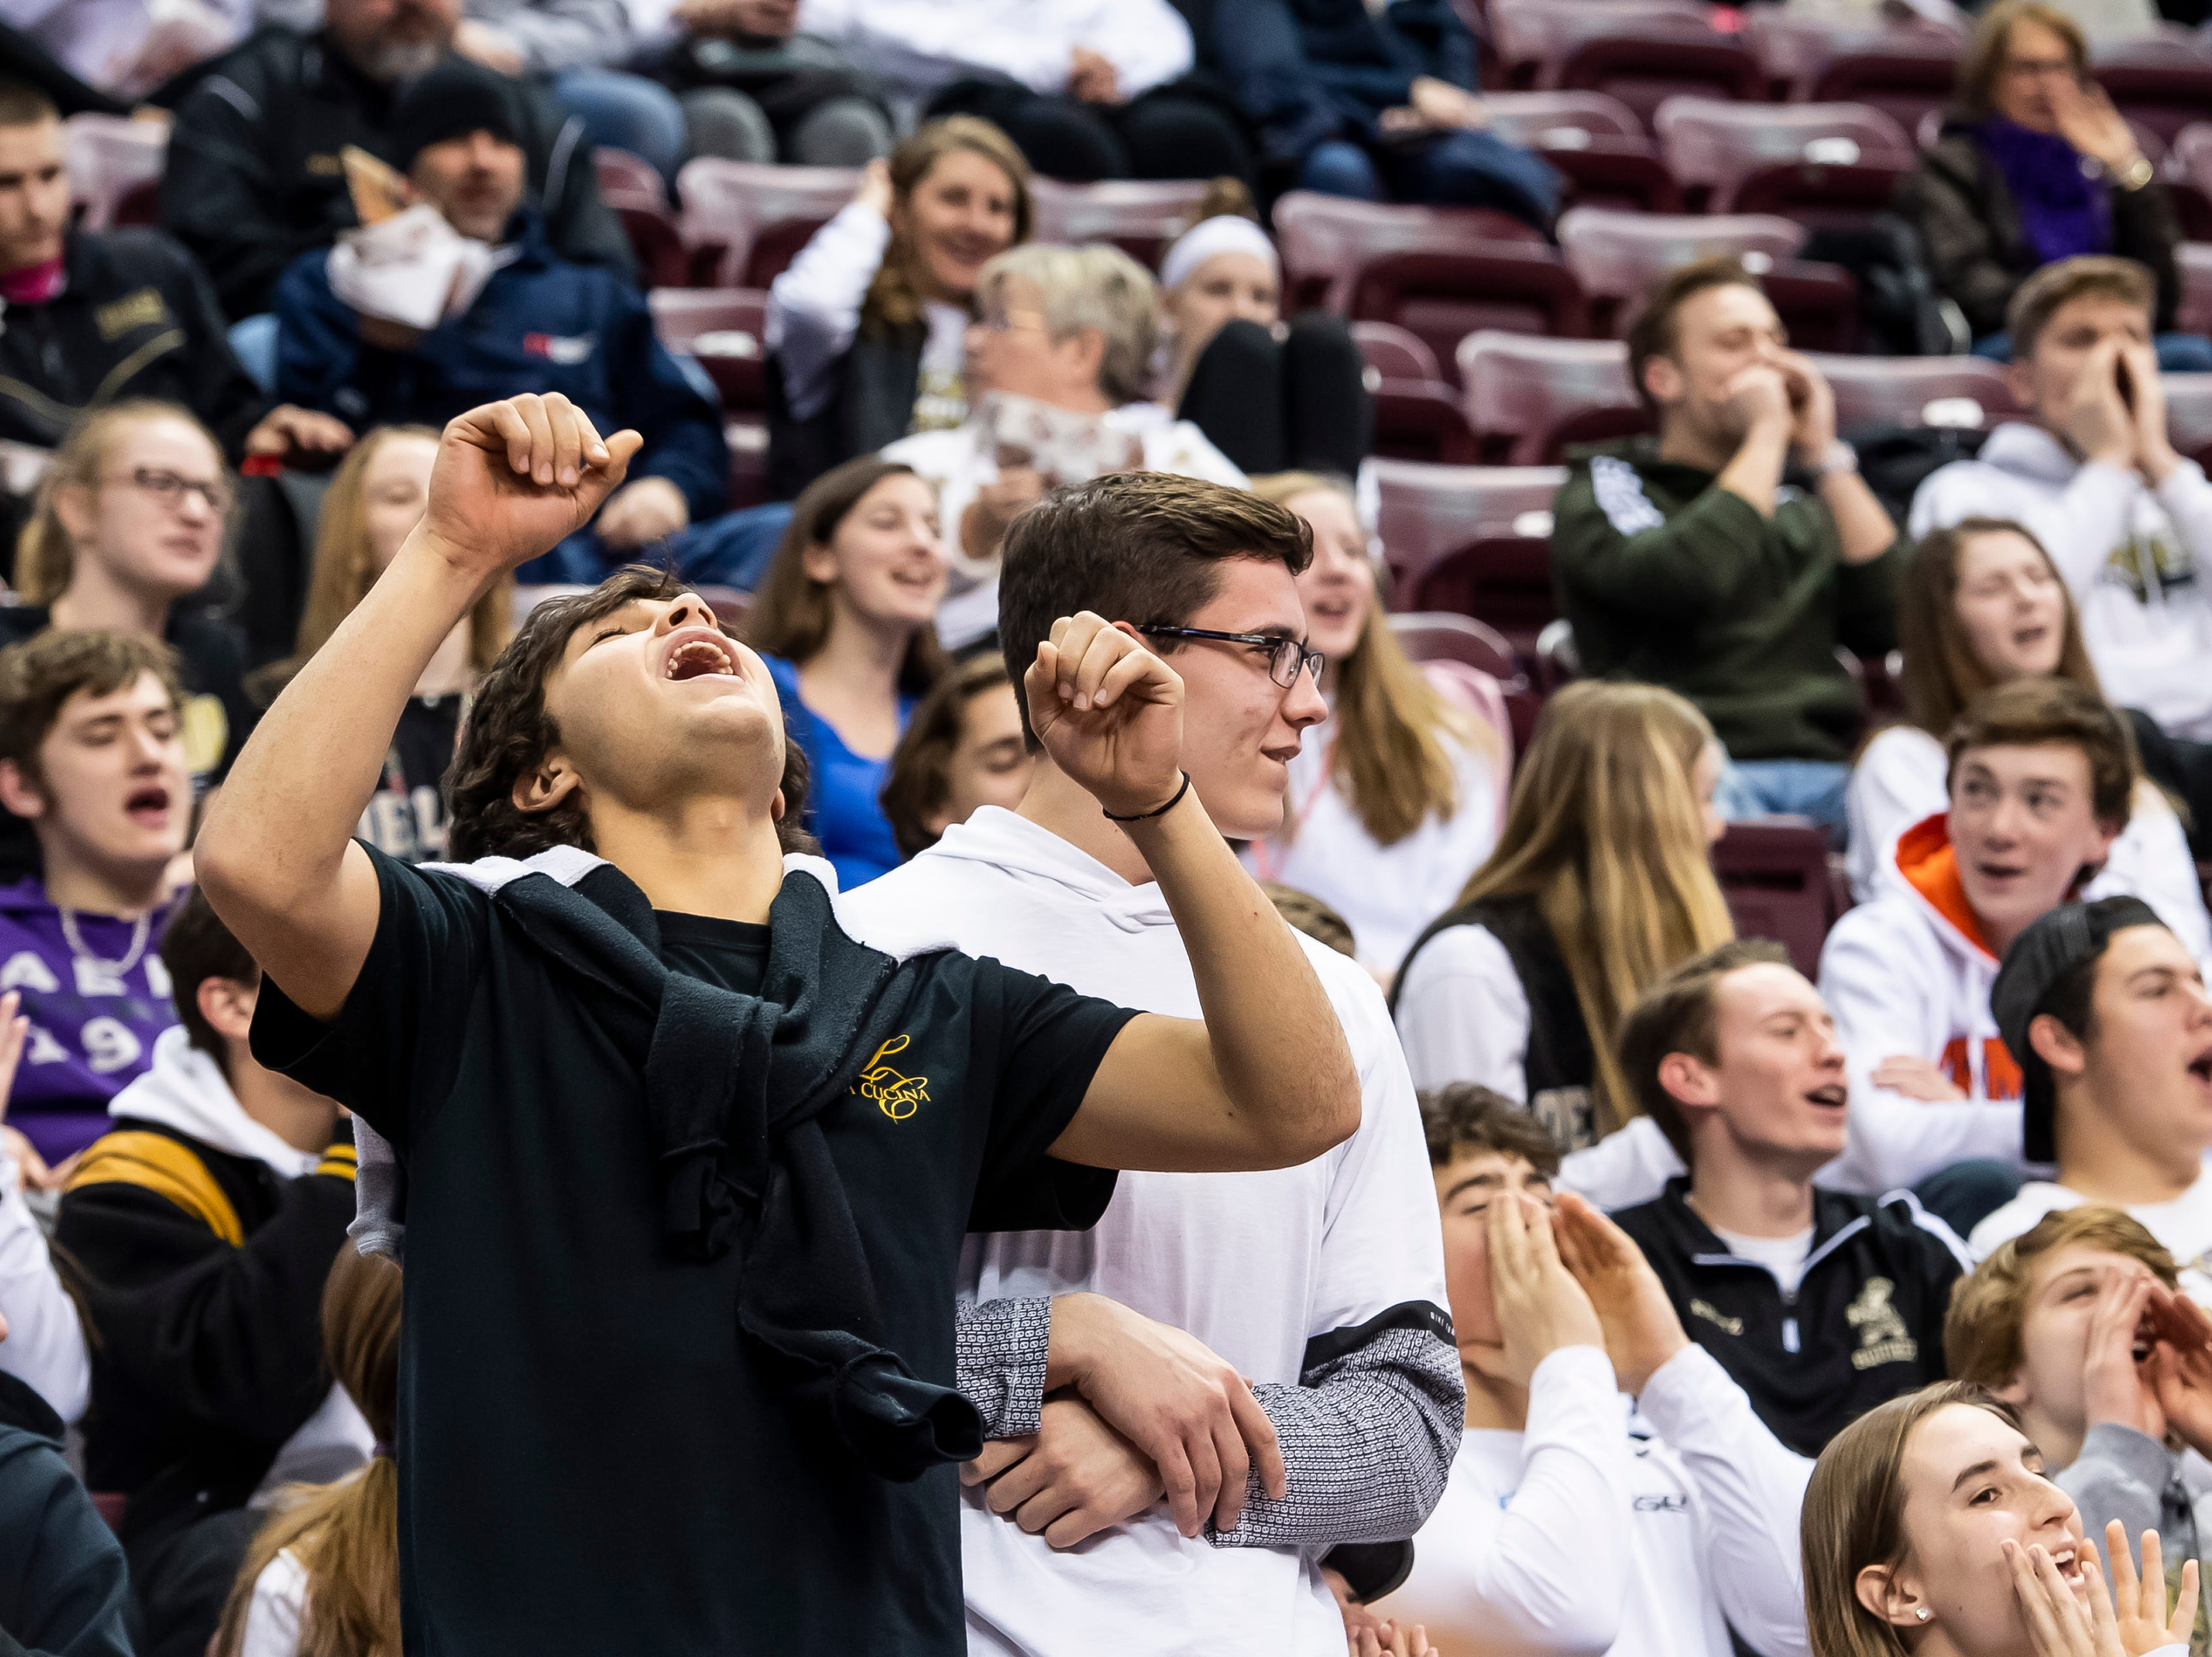 Delone Catholic fans chant during the District 3 3A girls championship game against Trinity at the Giant Center in Hershey Wednesday, Feb. 27, 2019. The Squirettes fell 44-33.